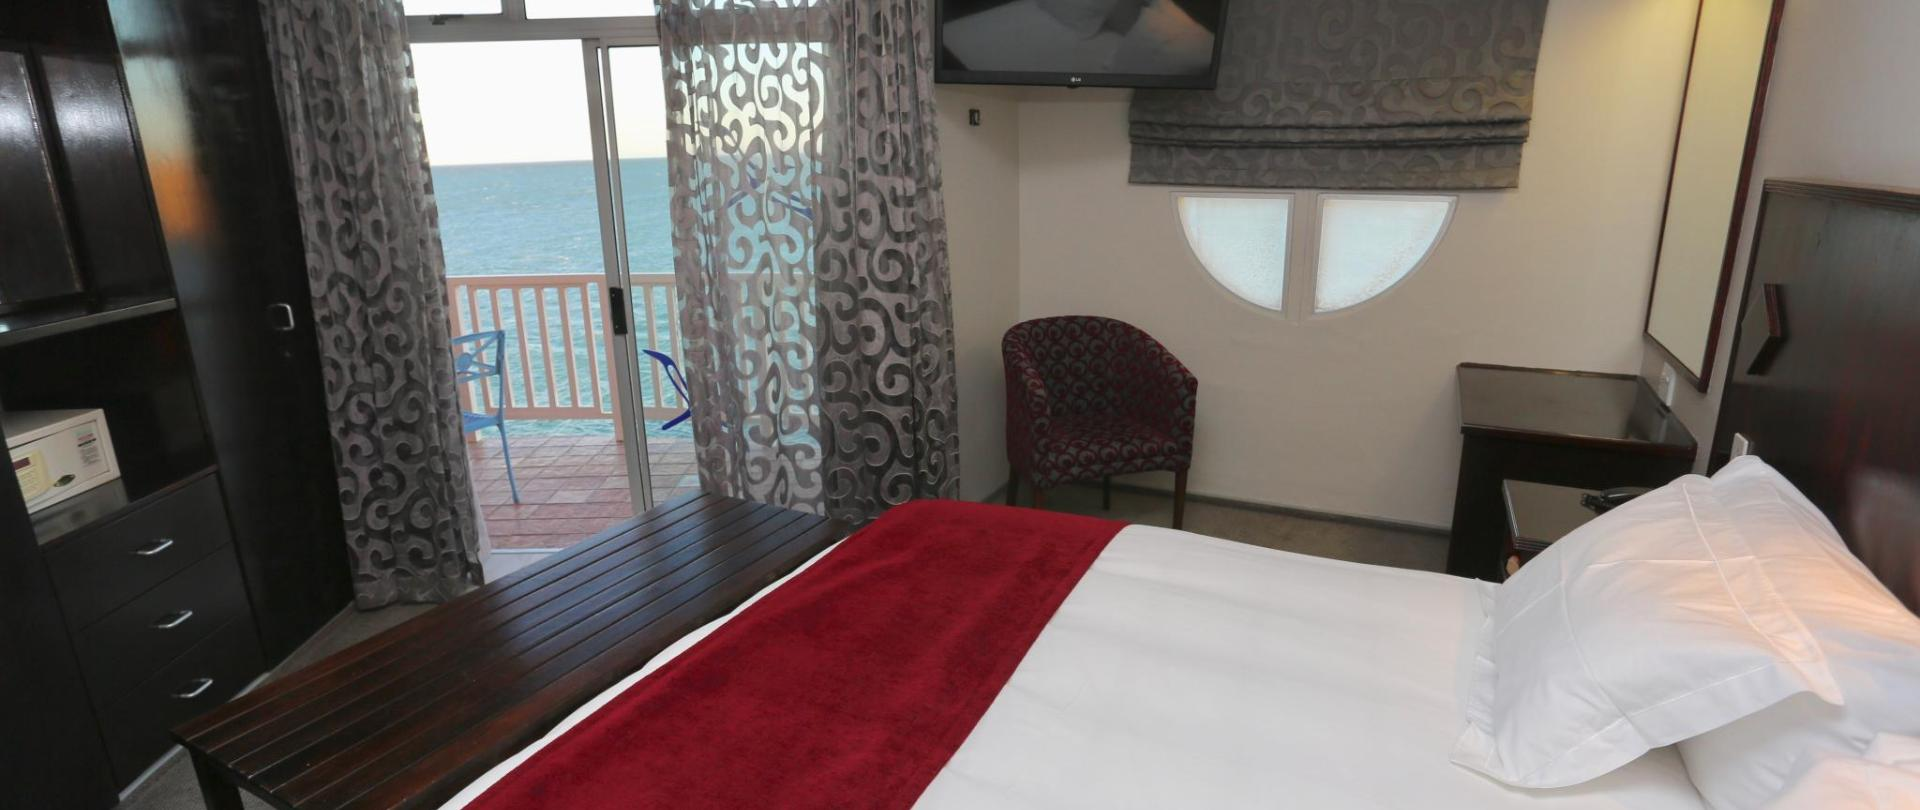 2018 LUXURY SUITE BEDROOM SEAVIEW.001.jpg